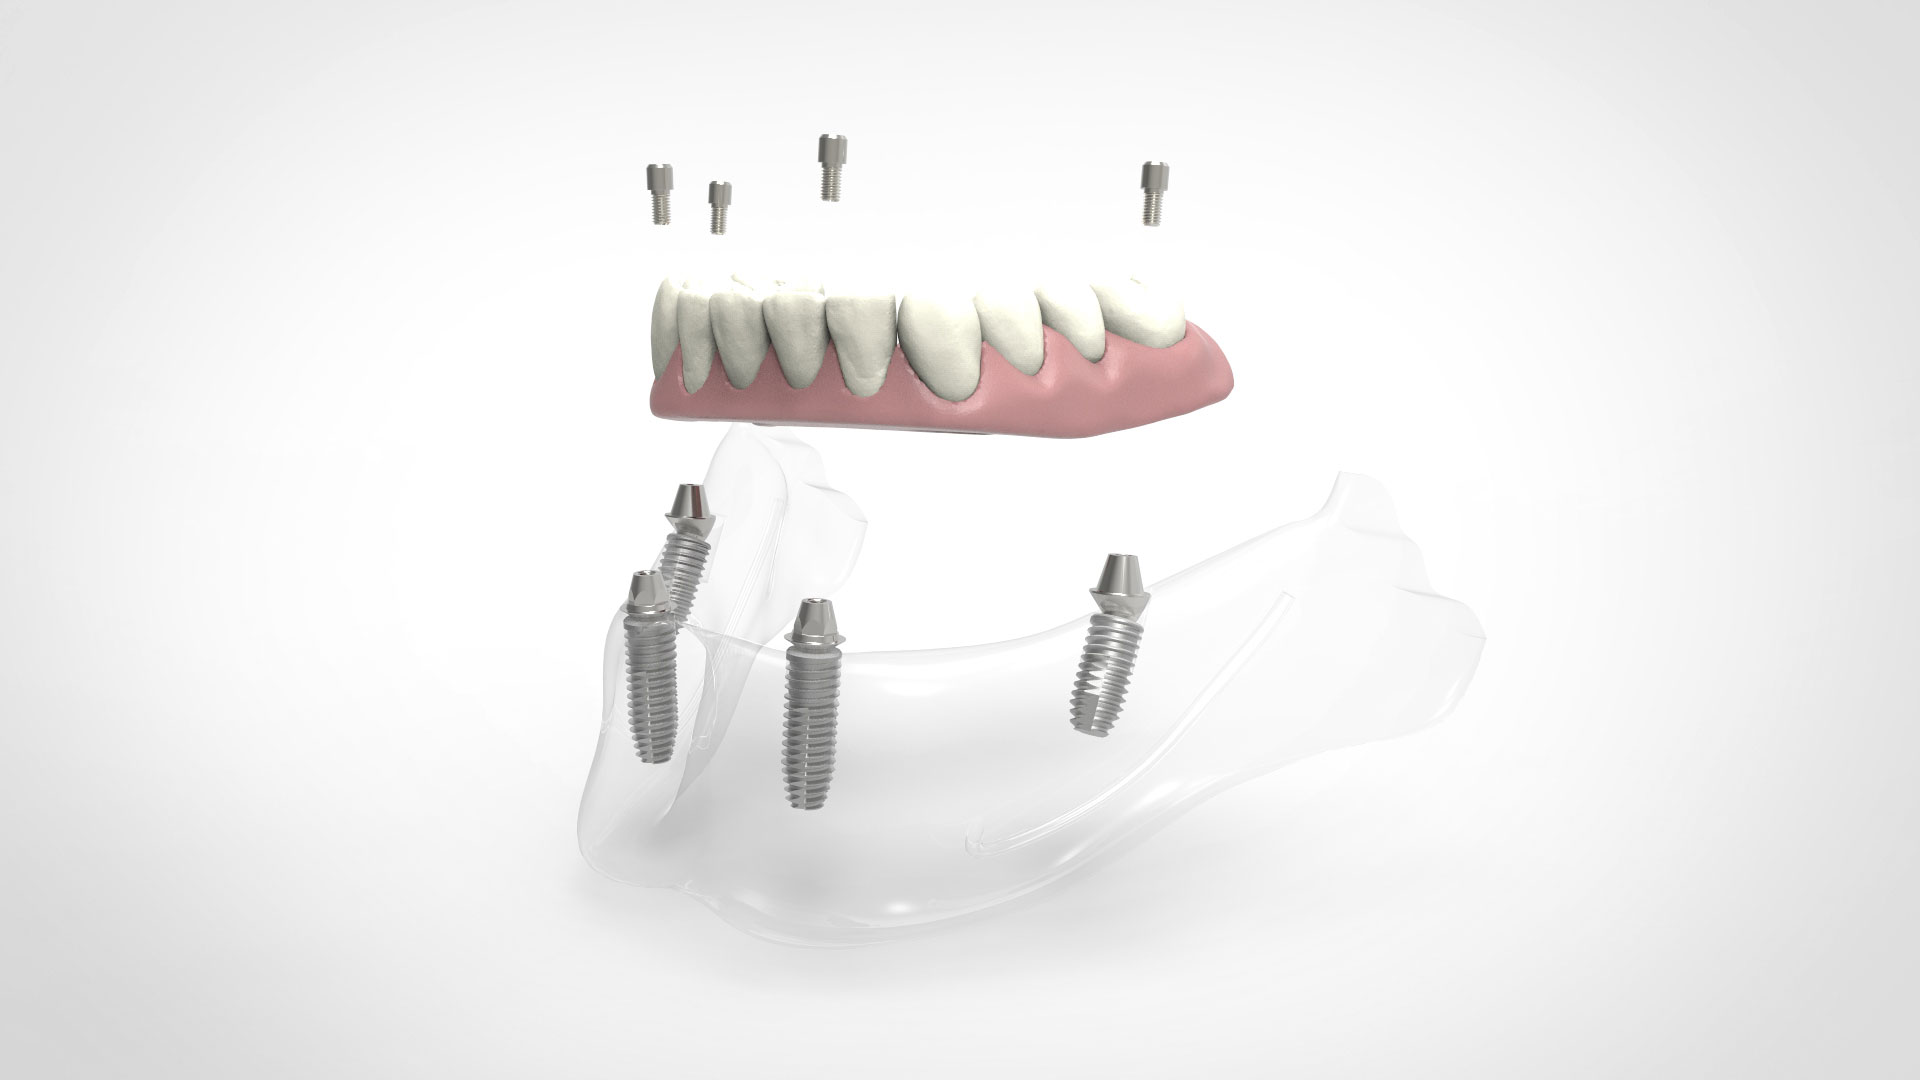 IMPLA-Multi-Unit | Vier Implantate im unteren Kiefer